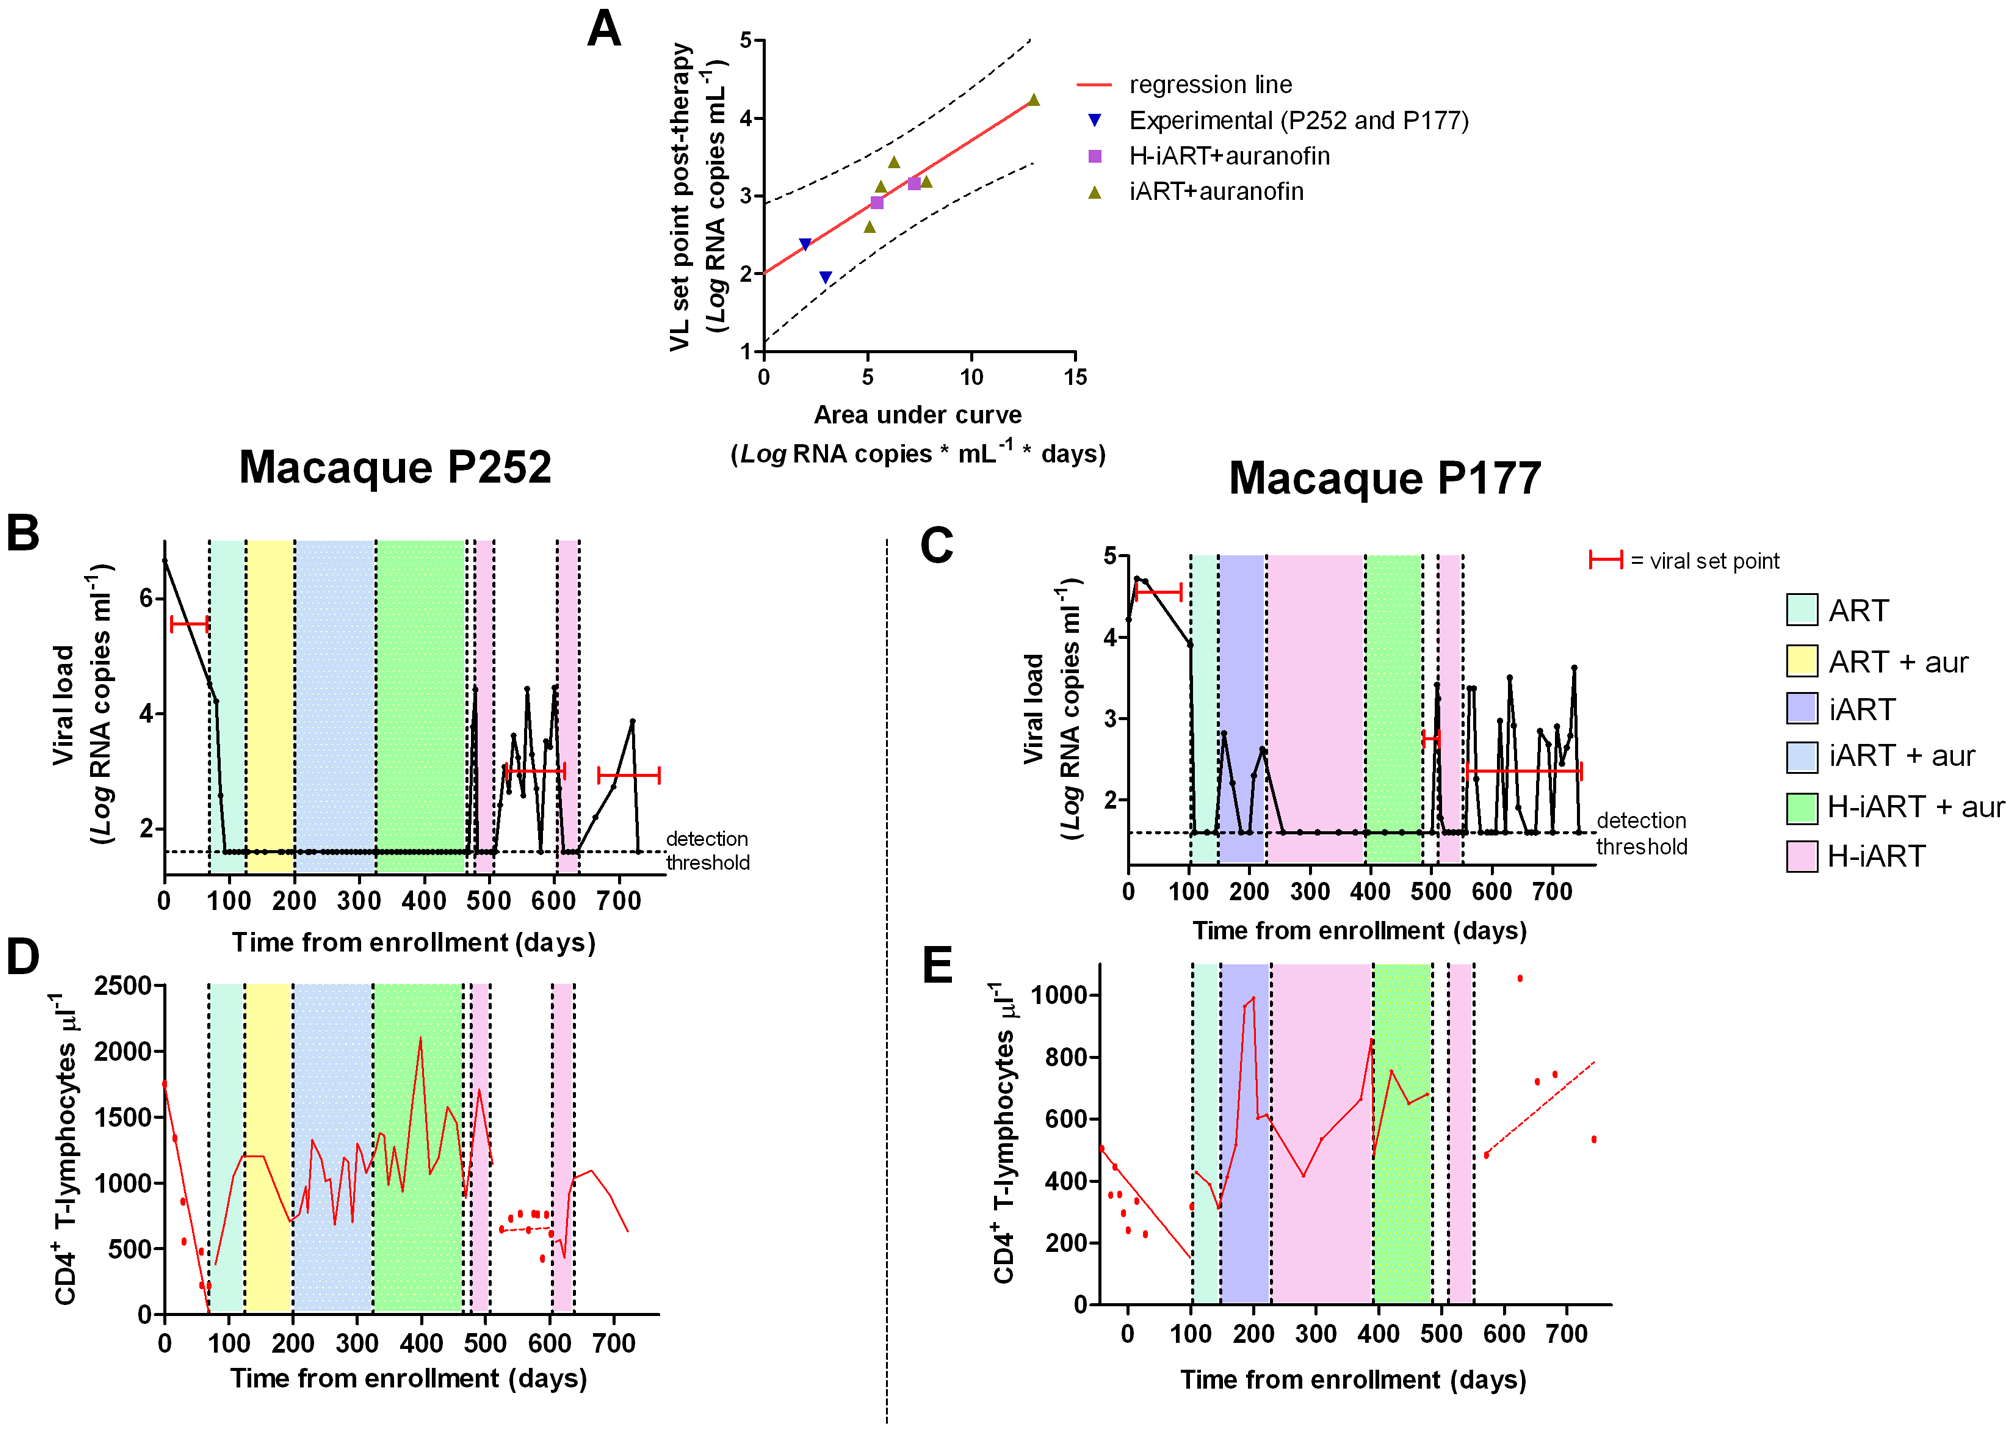 A short cycle of H-iART at viral rebound after structured treatment interruption improves the effects of auranofin-based anti-reservoir therapies on the eventual viral load set point.